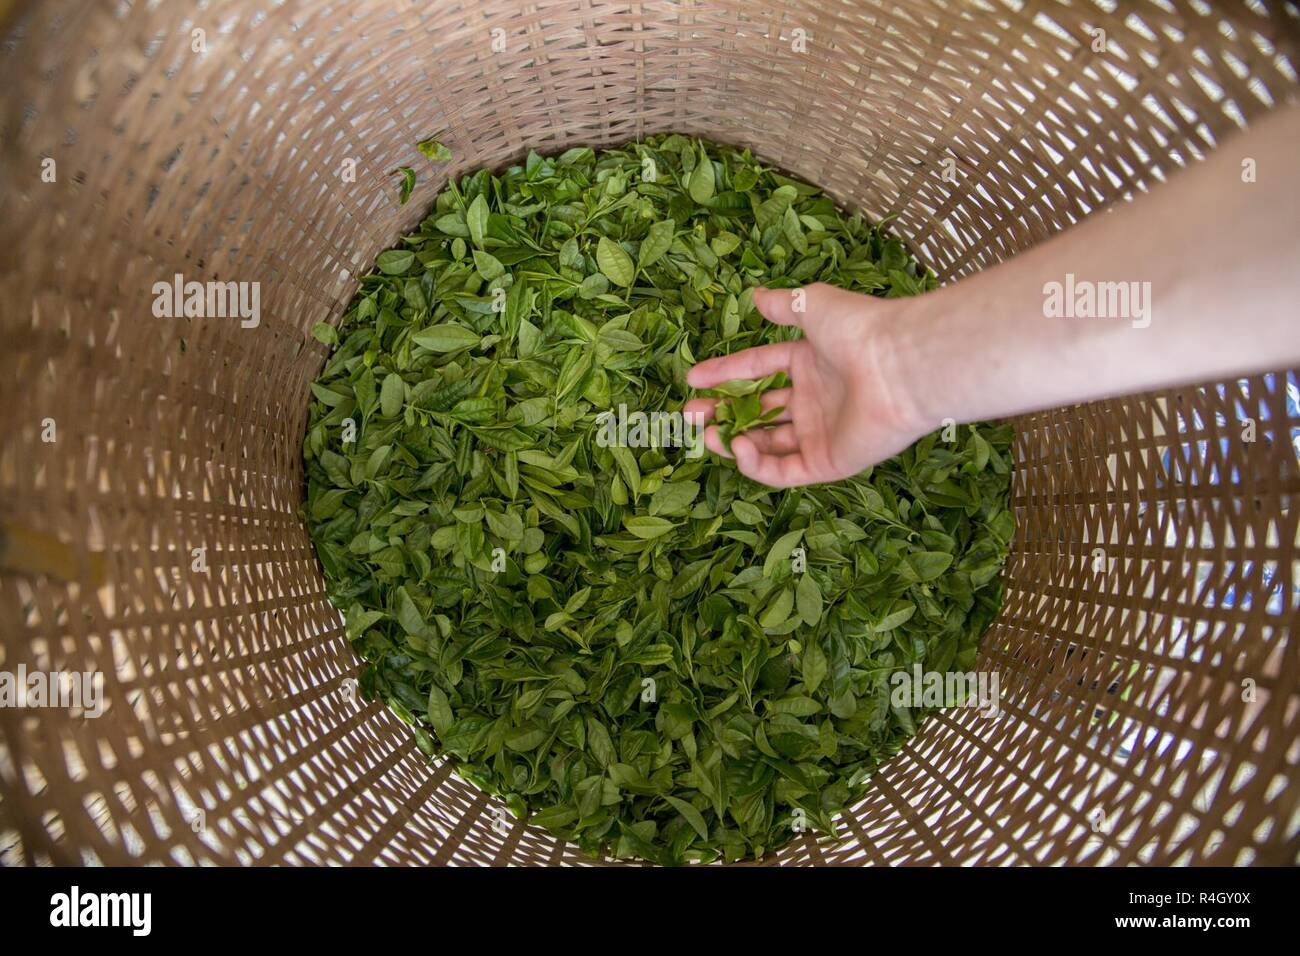 A basket is filled with green tea leaves during a Cultural Adaption Program tea harvesting event in Iwakuni City, May 2, 2017. The Cultural Adaptation Program gave Marine Corps Air Station Iwakuni residents the opportunity to experience the Japanese culture alongside elementary and high school students, nursing home residents and other Japanese locals. - Stock Image